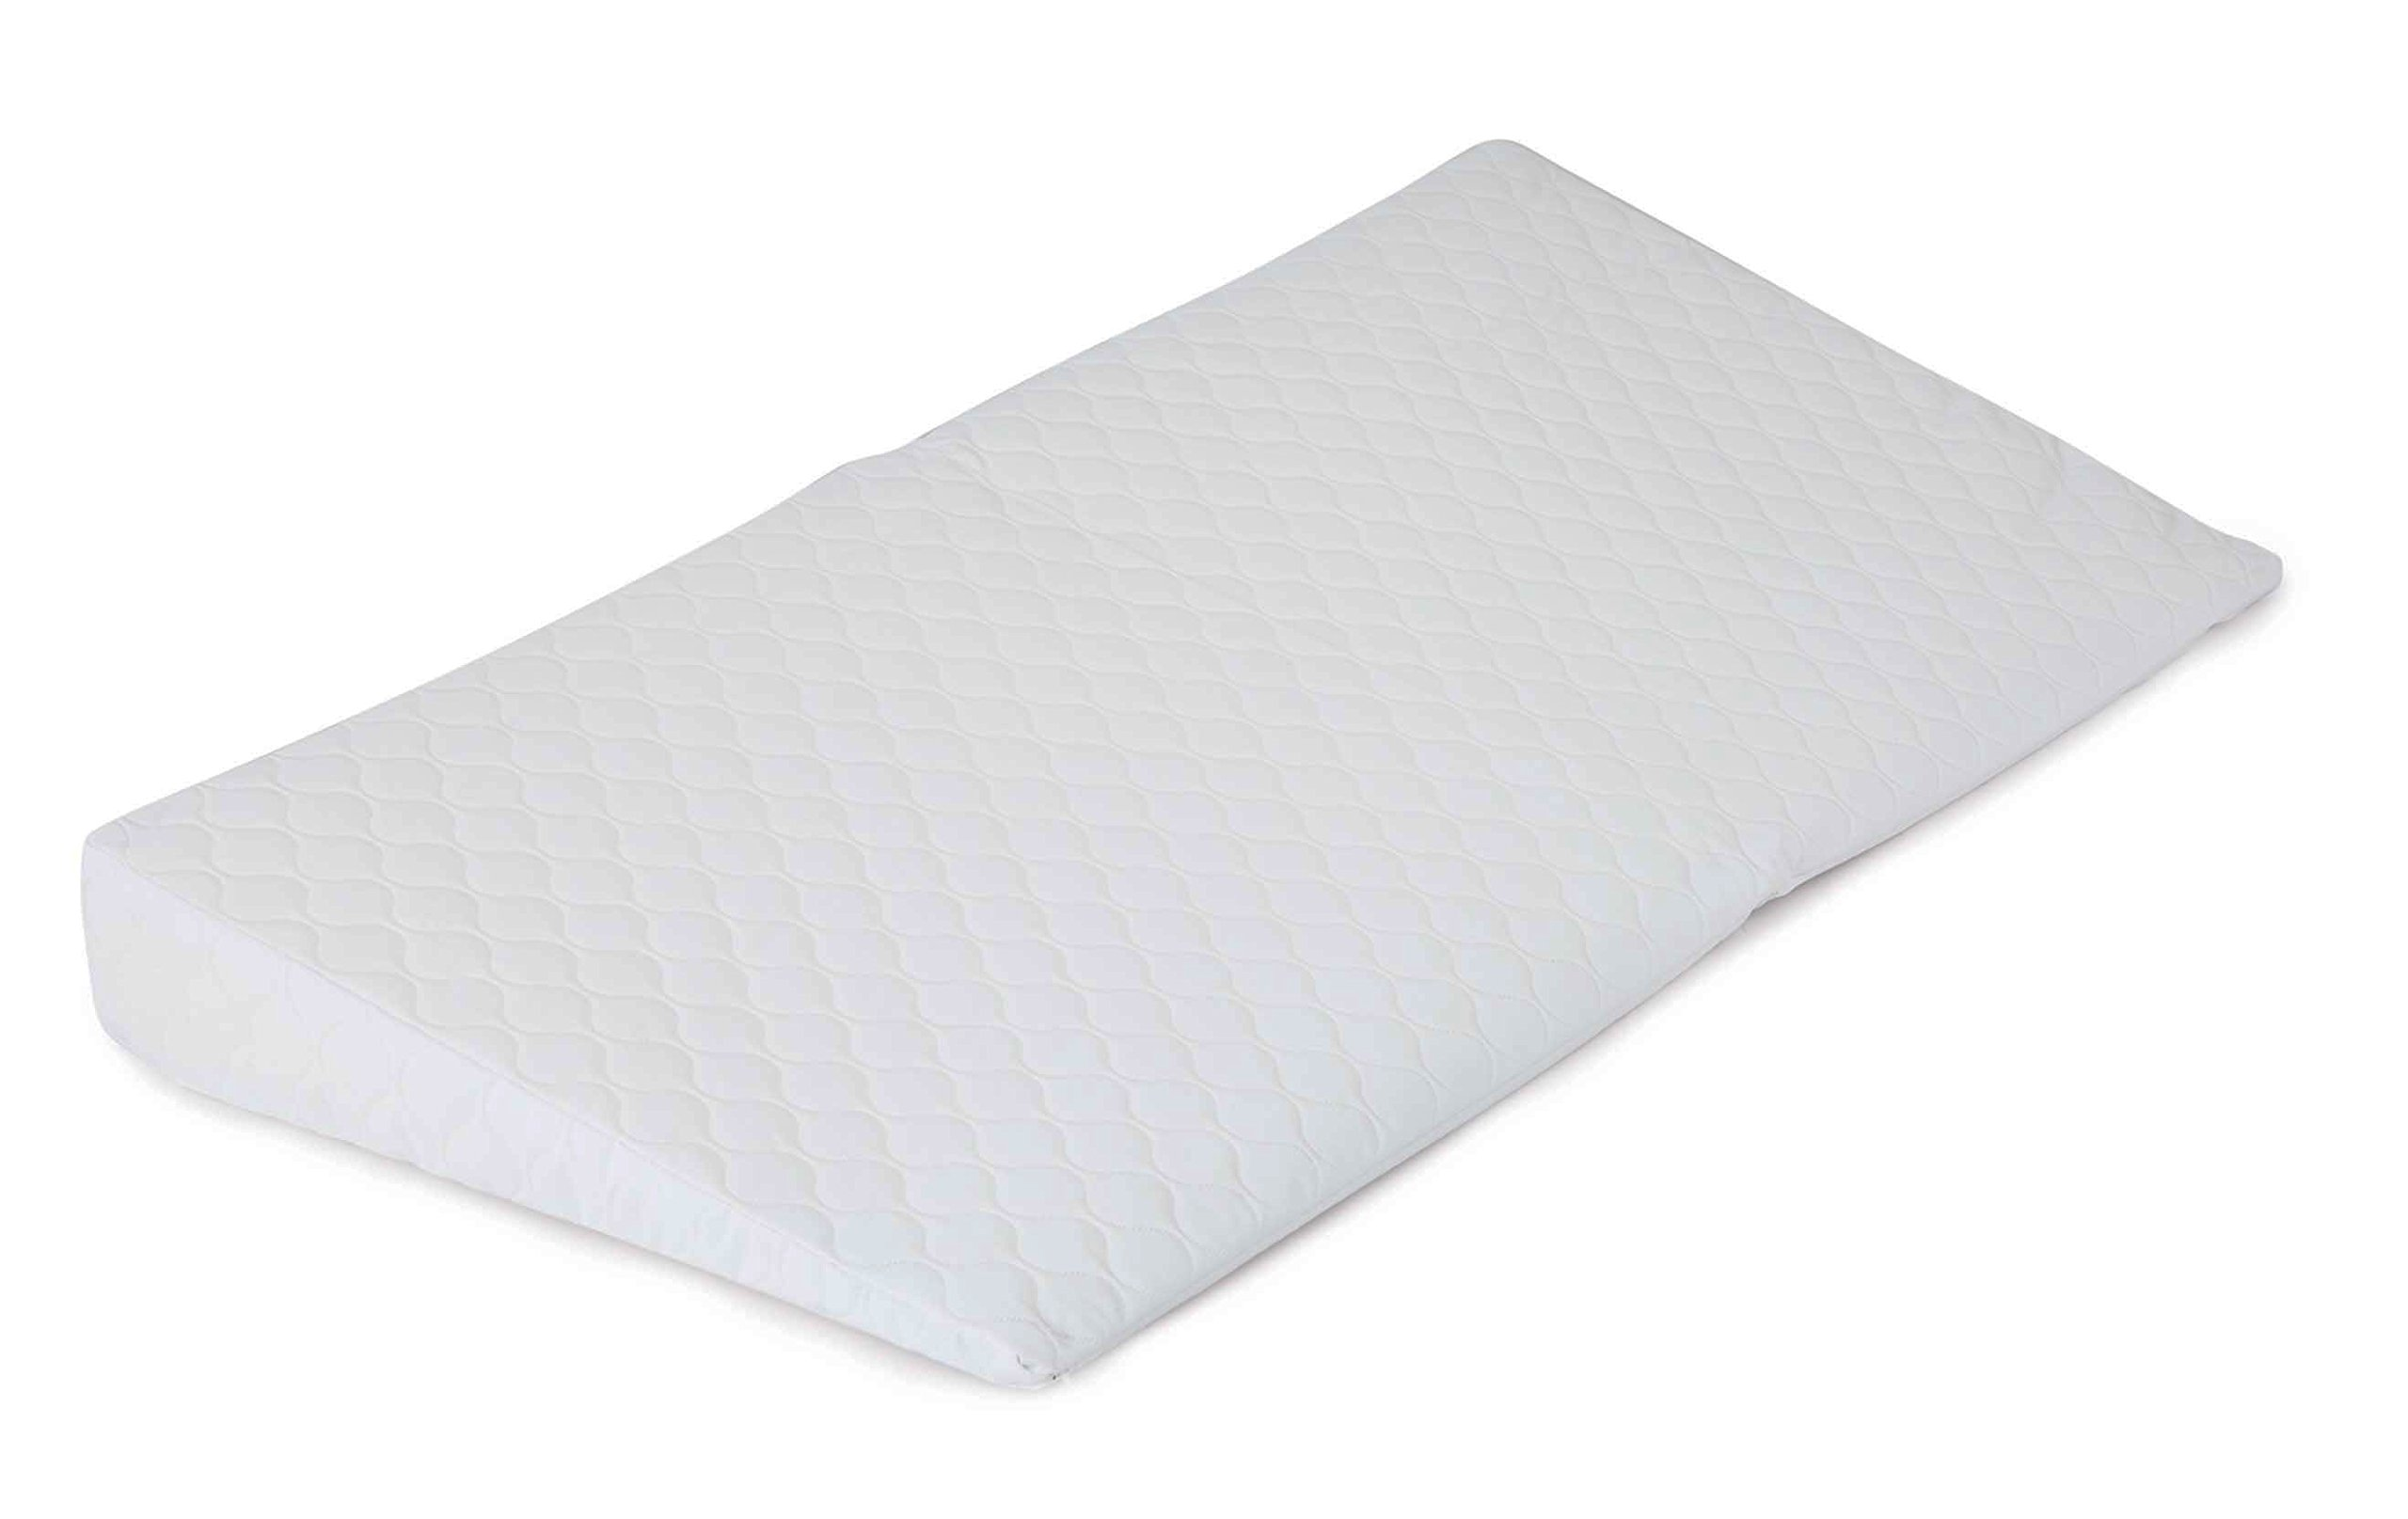 Reste Baby Crib Mattress Wedge - Helps Safely Increase Incline of Sleep to Reduce Acid Reflux and Help Baby Sleep Better - Universal Crib Fit - Foldable, Waterproof Design